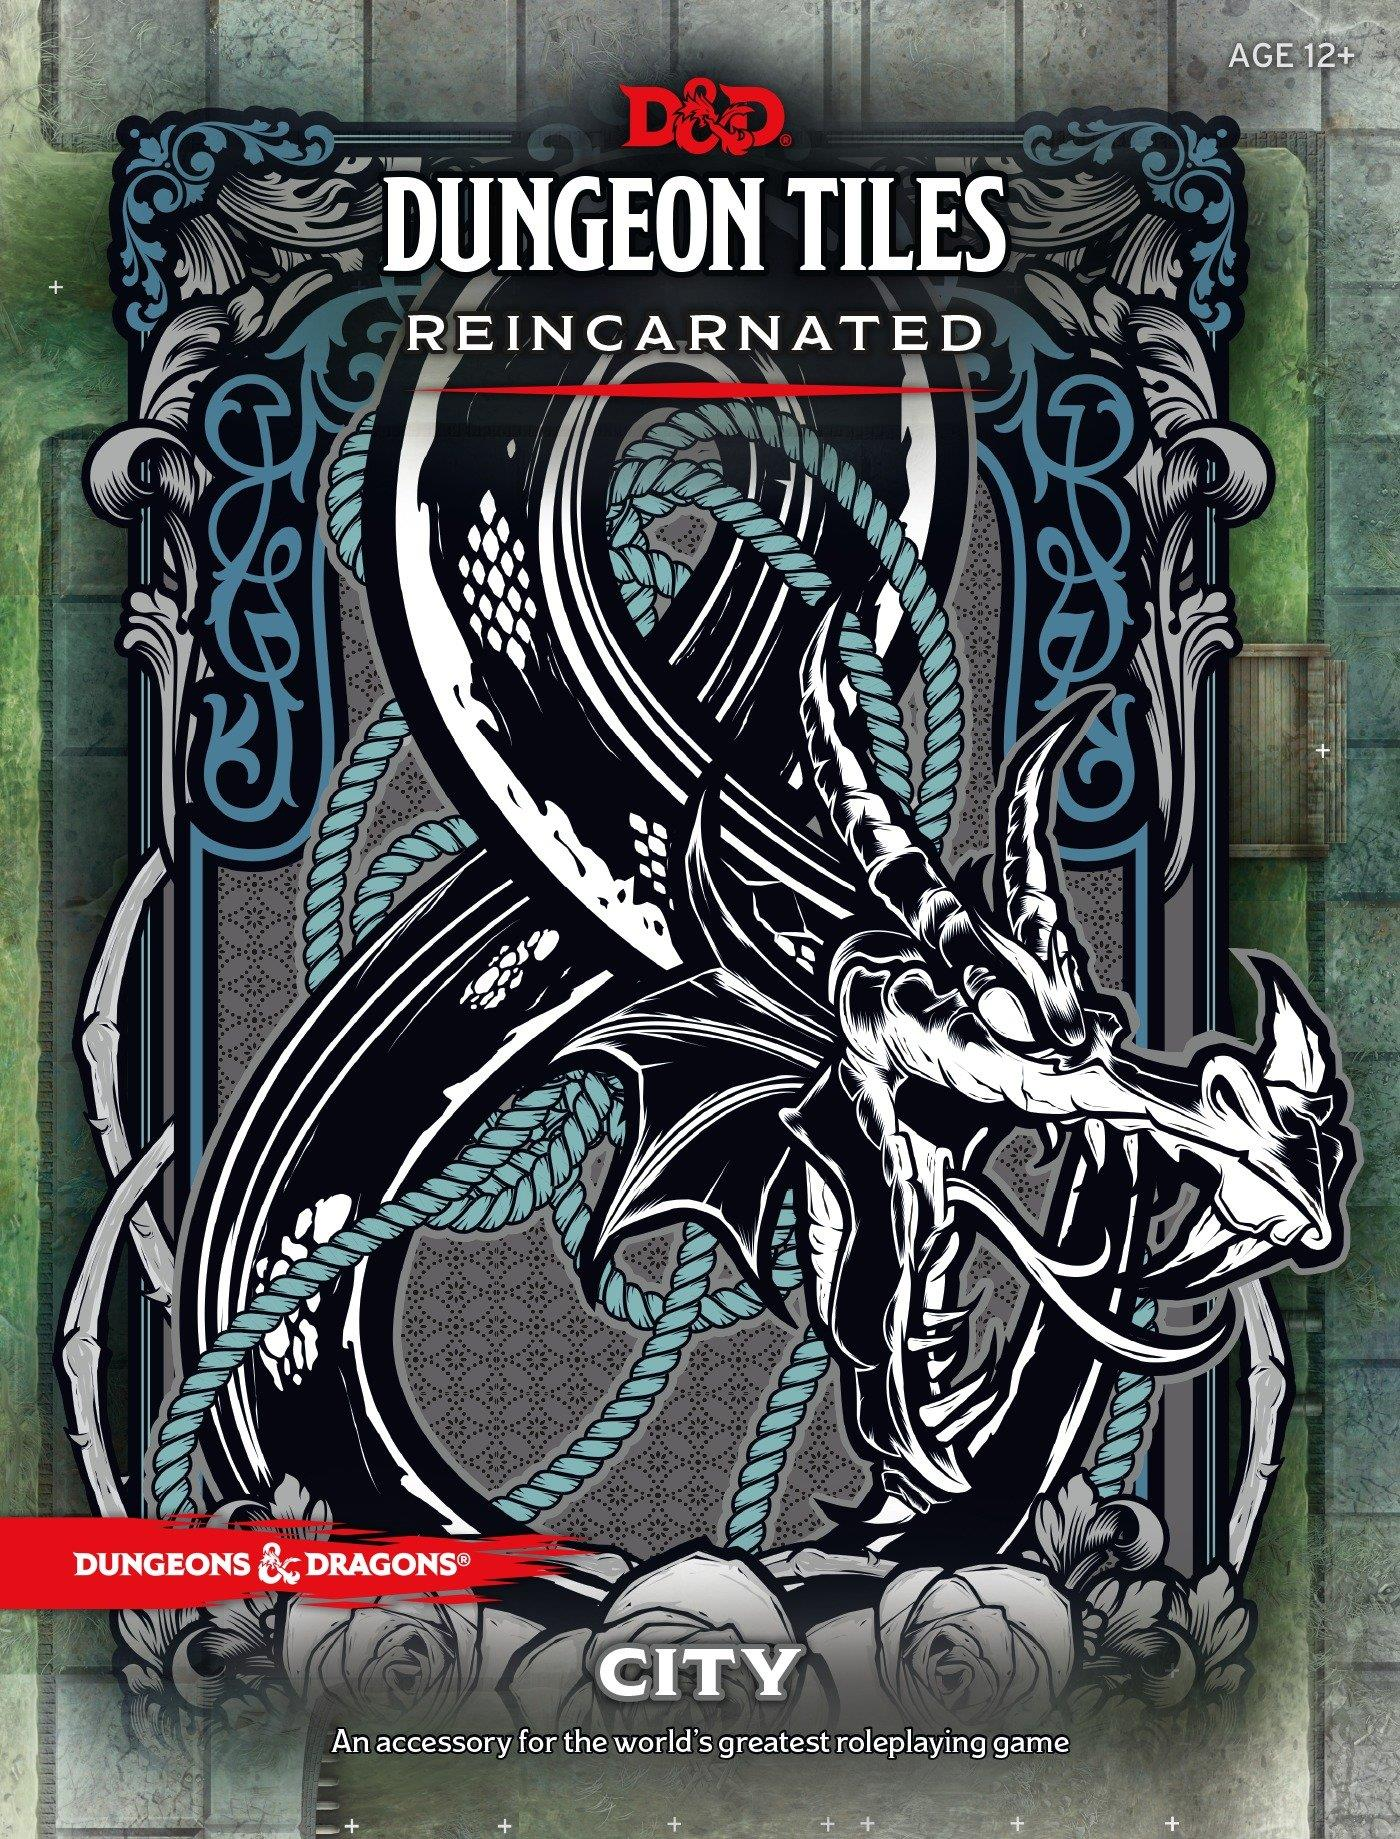 DUNGEONS AND DRAGONS DUNGEON TILES REINCARNATED CITY WOCC4911